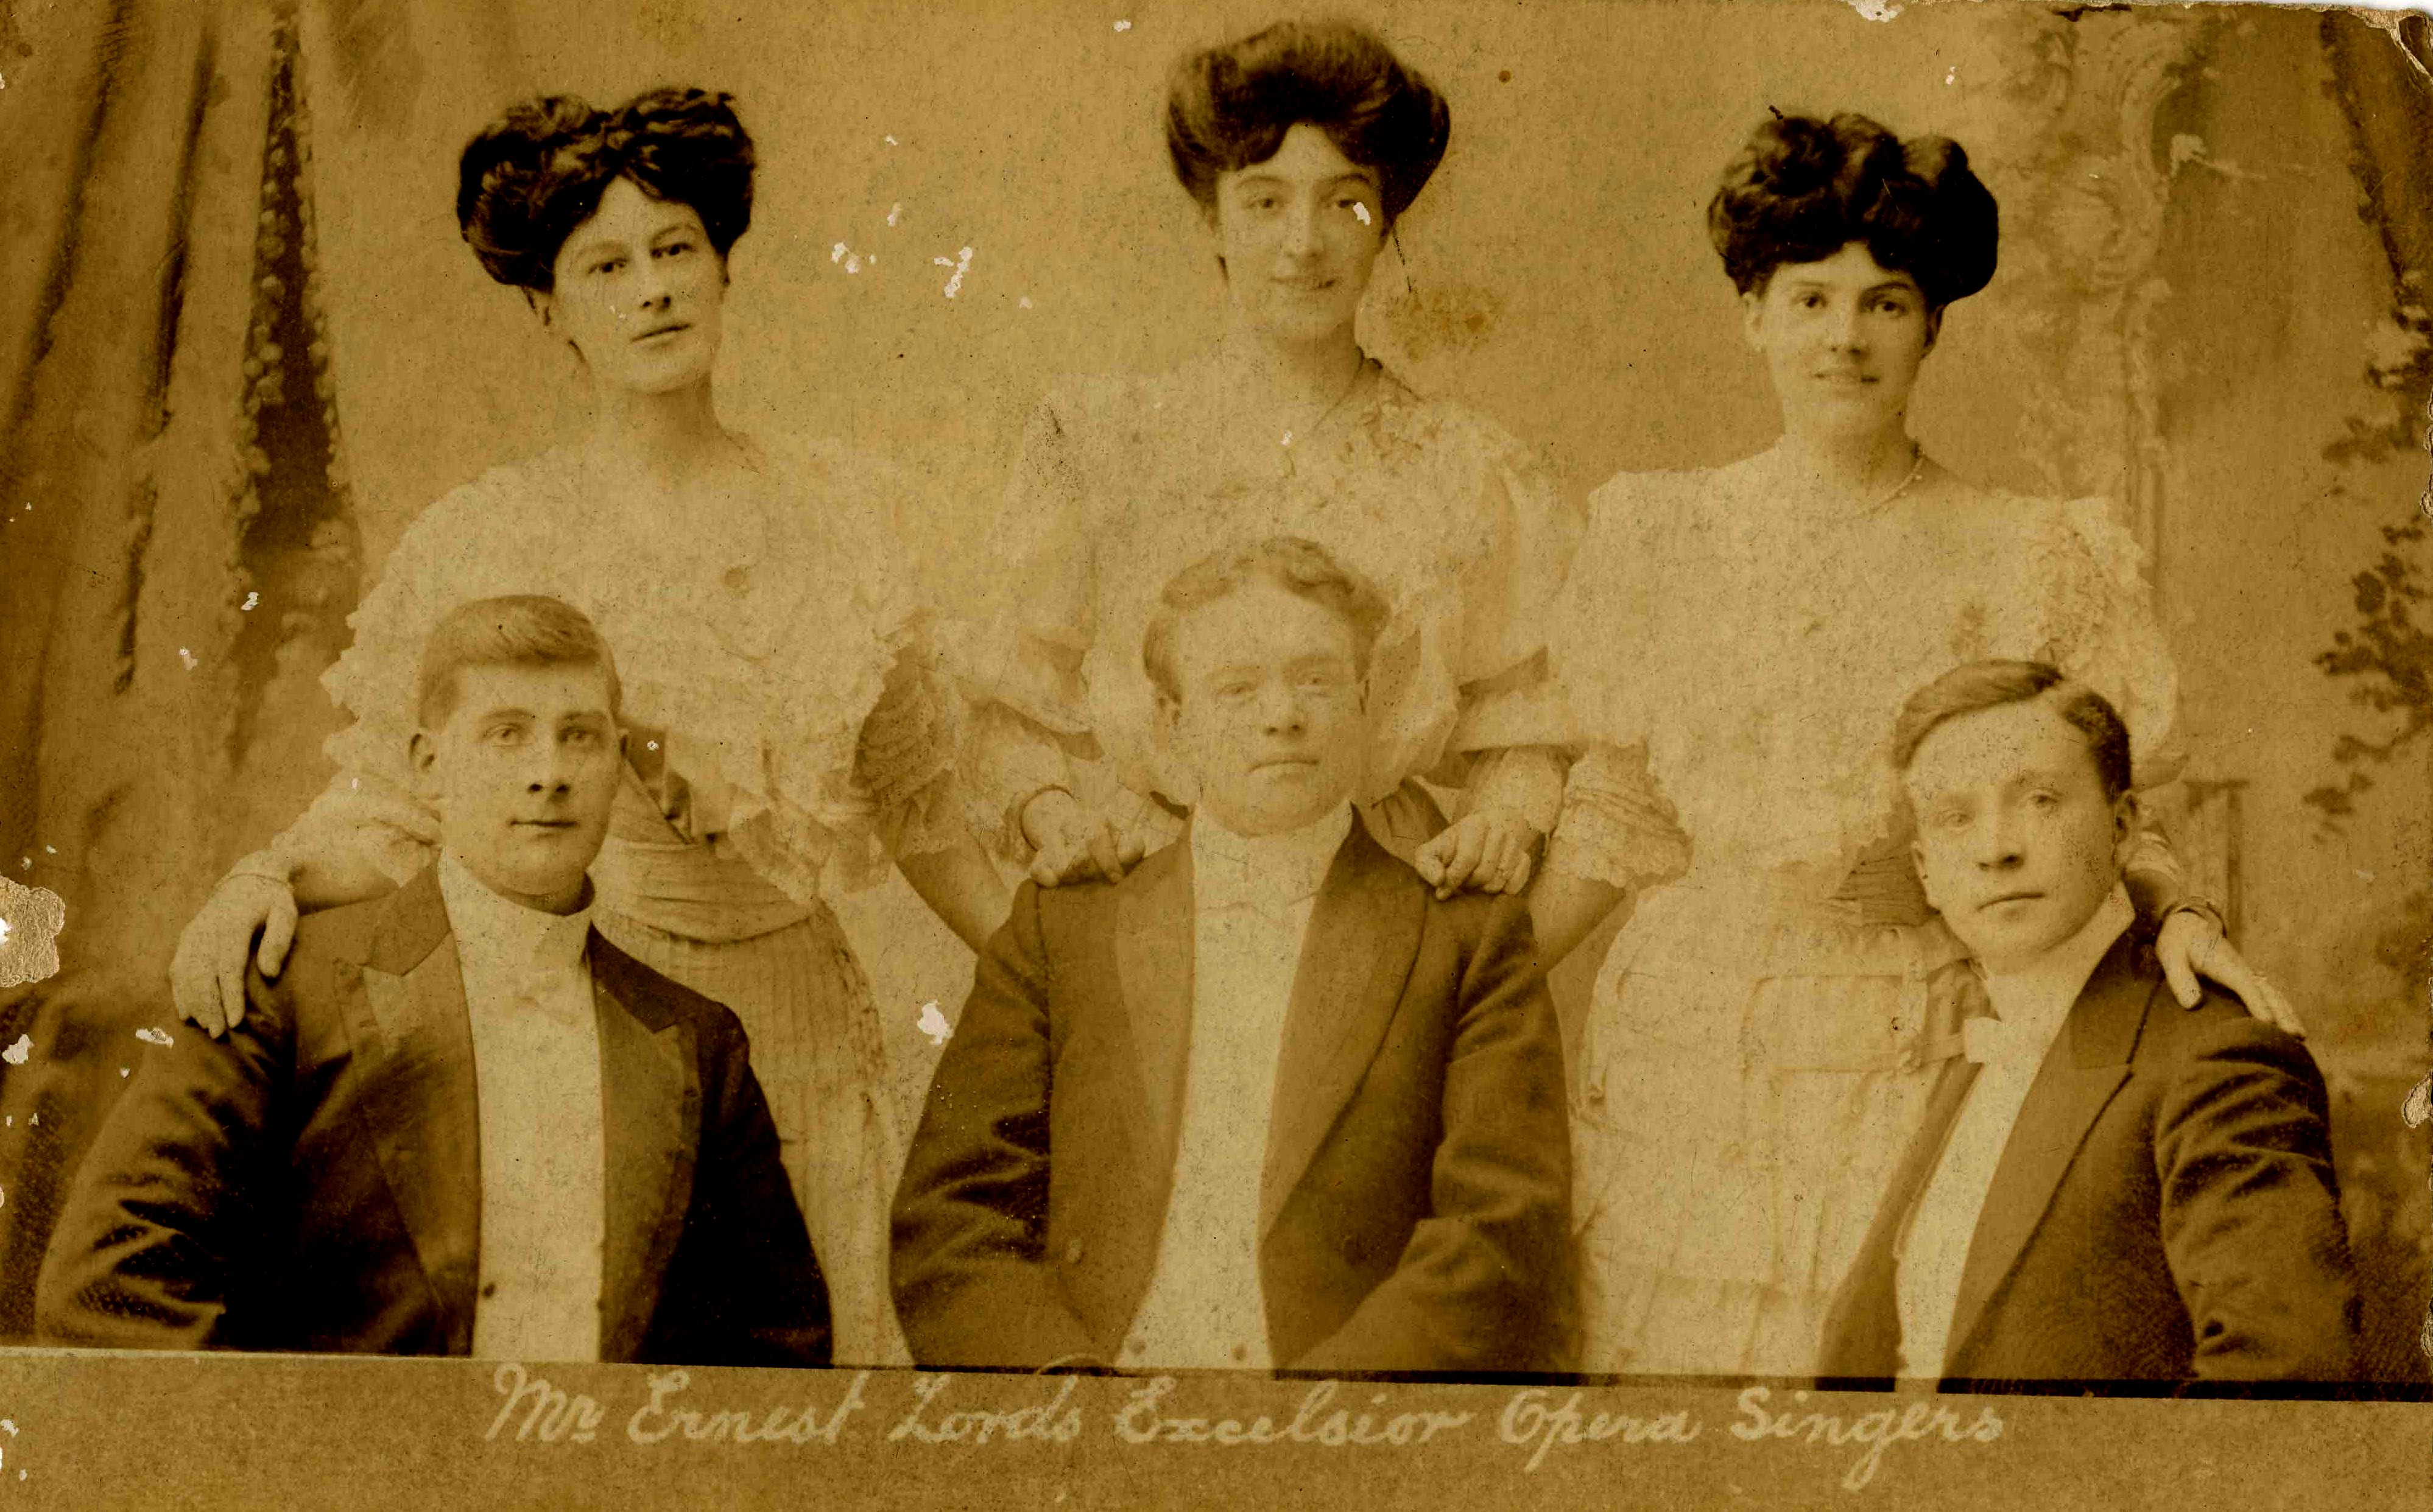 Photographic postcard of Mr Ernest Lords Excelsior Opera Singers